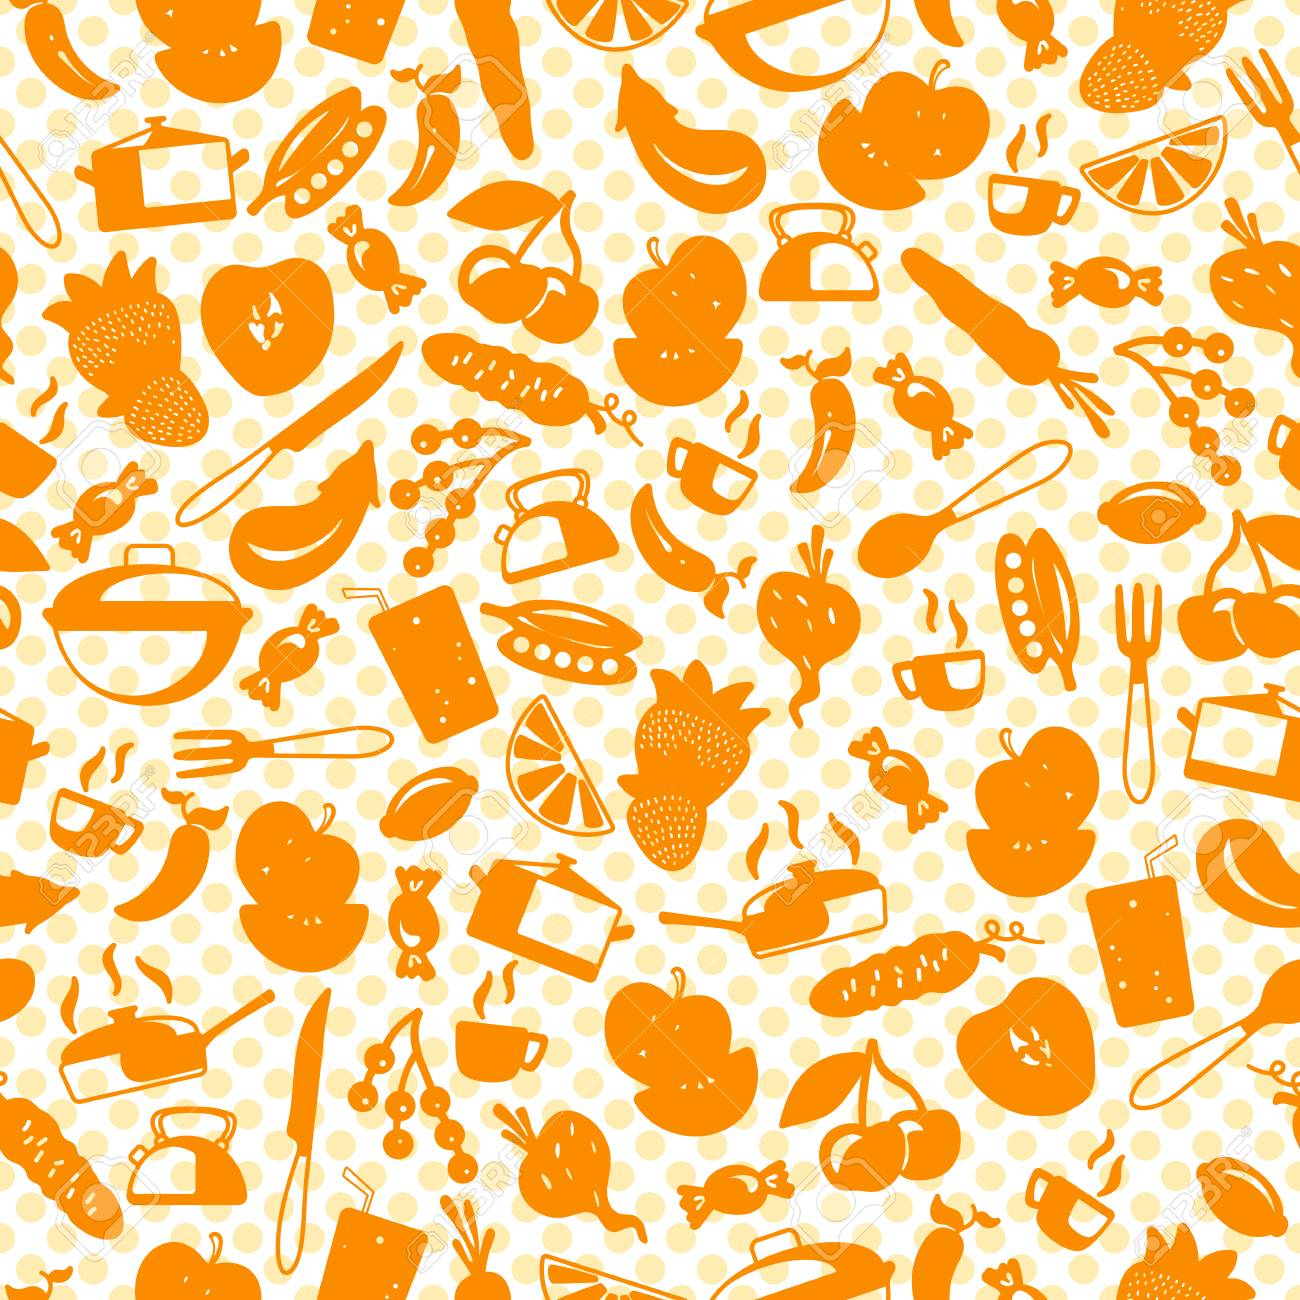 Genial Seamless Pattern With Simple Icons On A Theme Kitchen Accessories And Food , Orange Silhouettes Of